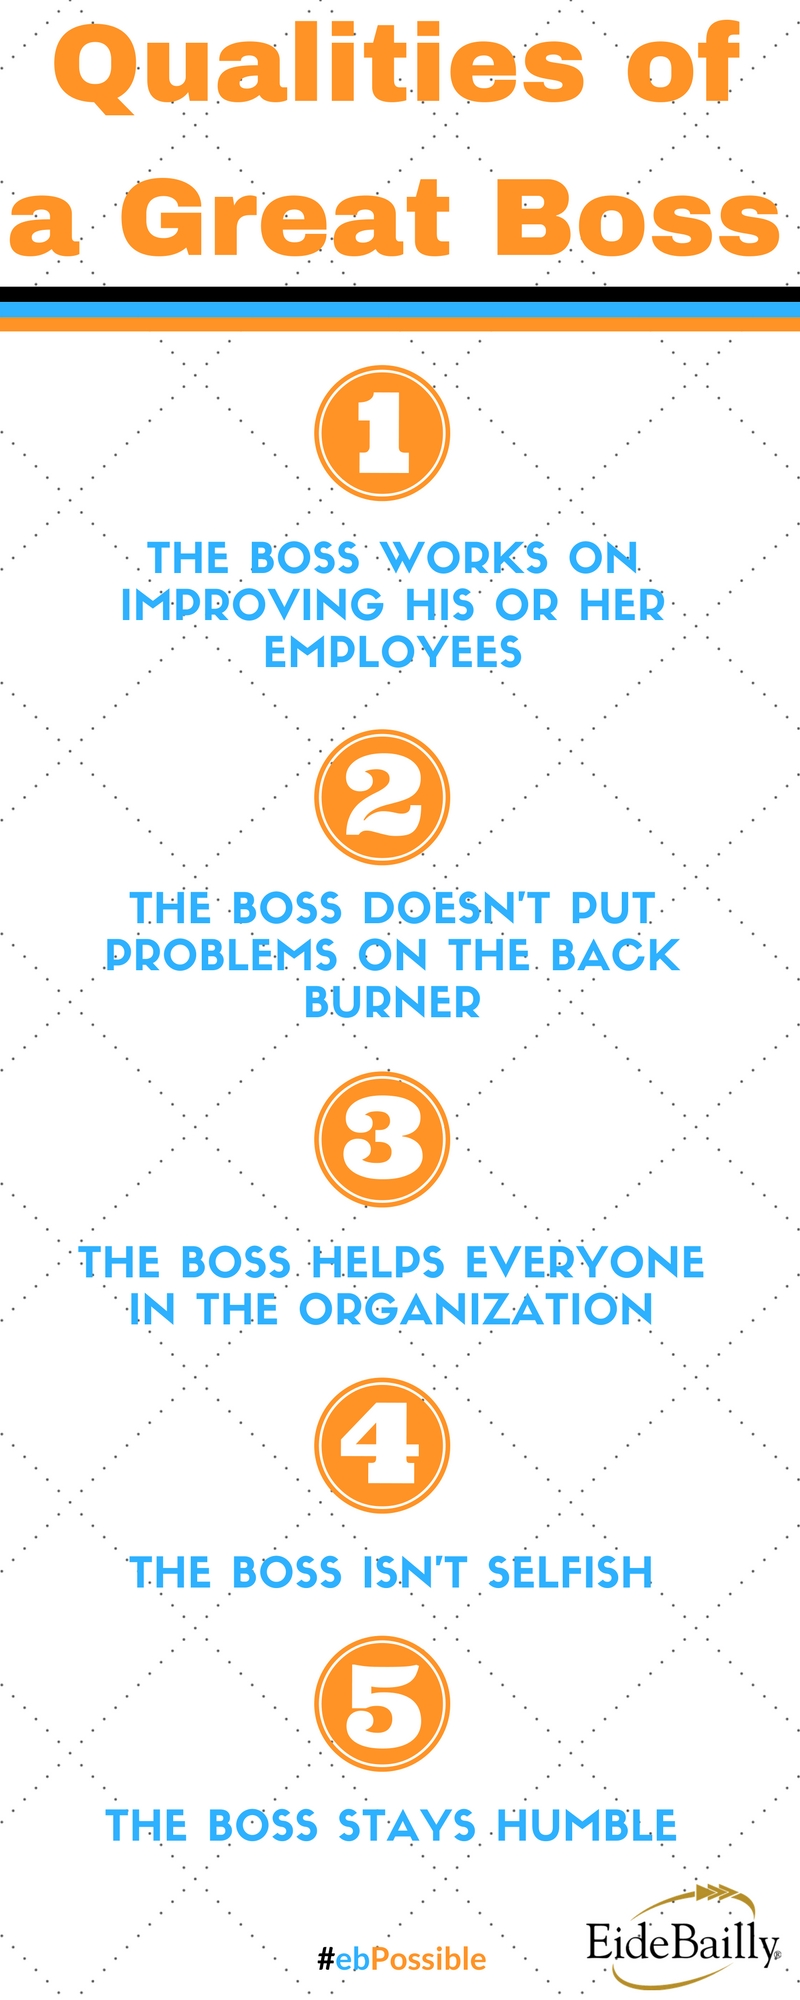 Qualities of a Great Boss